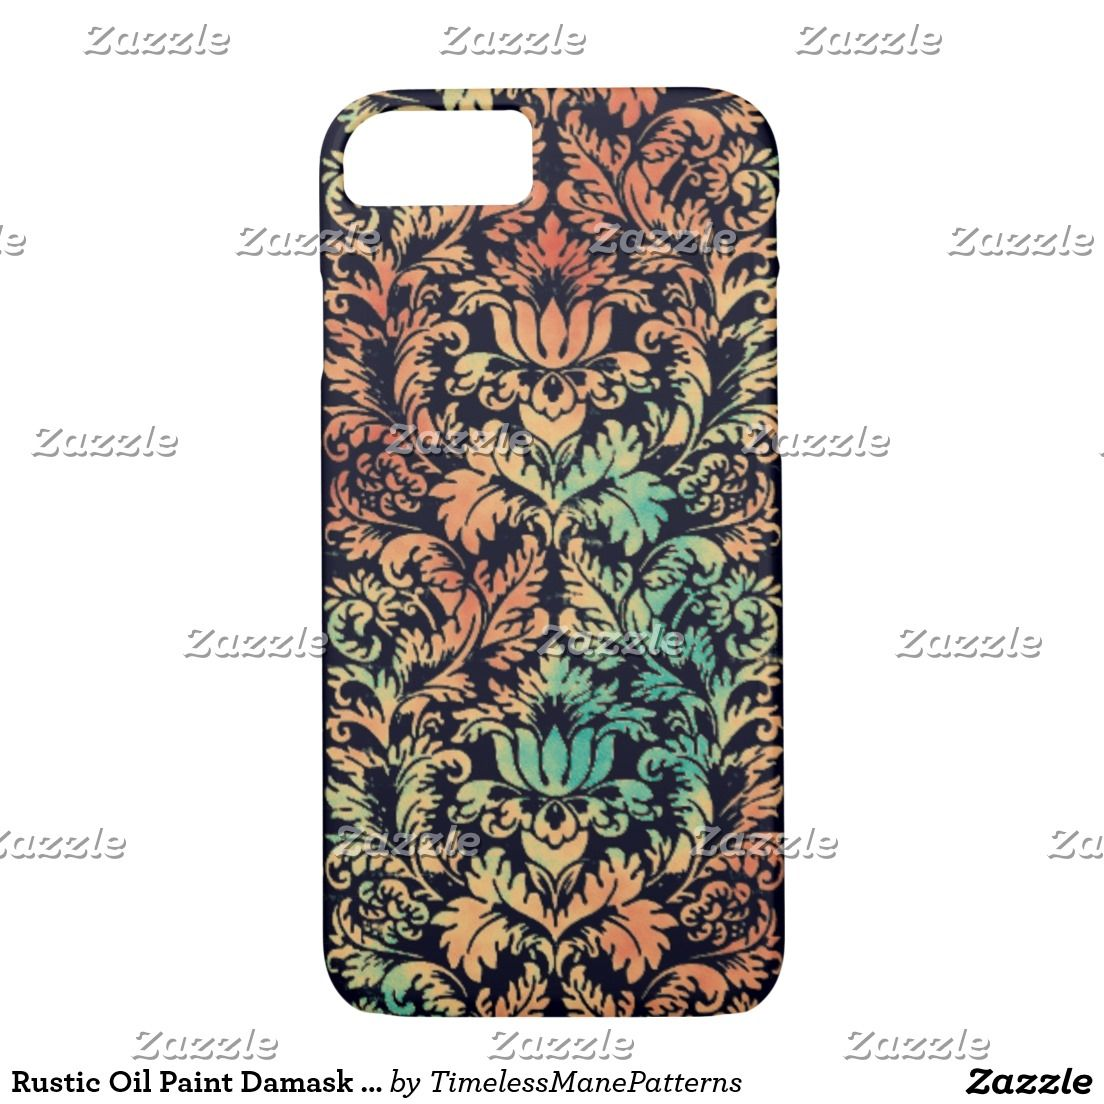 Rustic Oil Paint Damask Red Rust and Patina Green iPhone 7 Case